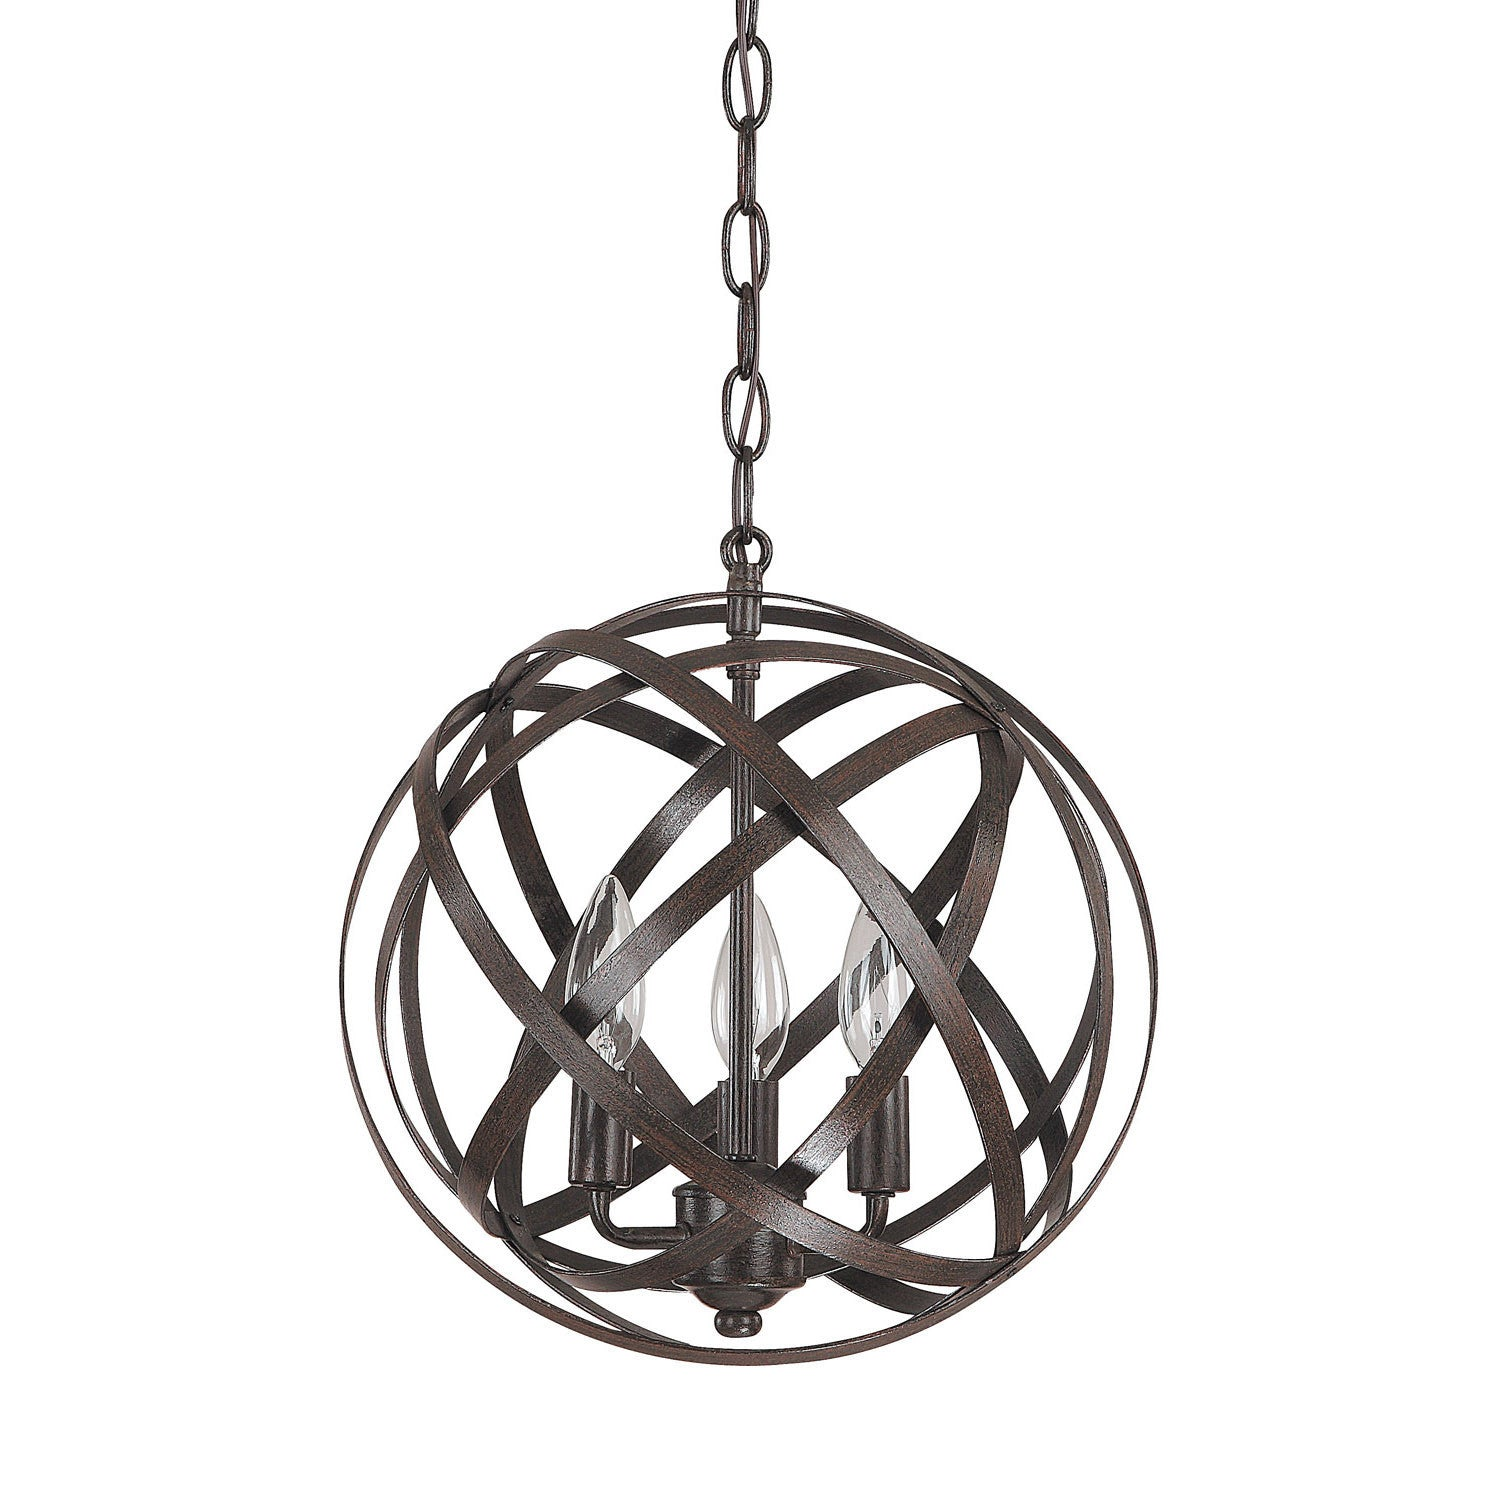 Axis 3 Light Orb Chandelier in Russet Bronze by Capital Lighting 4233RS